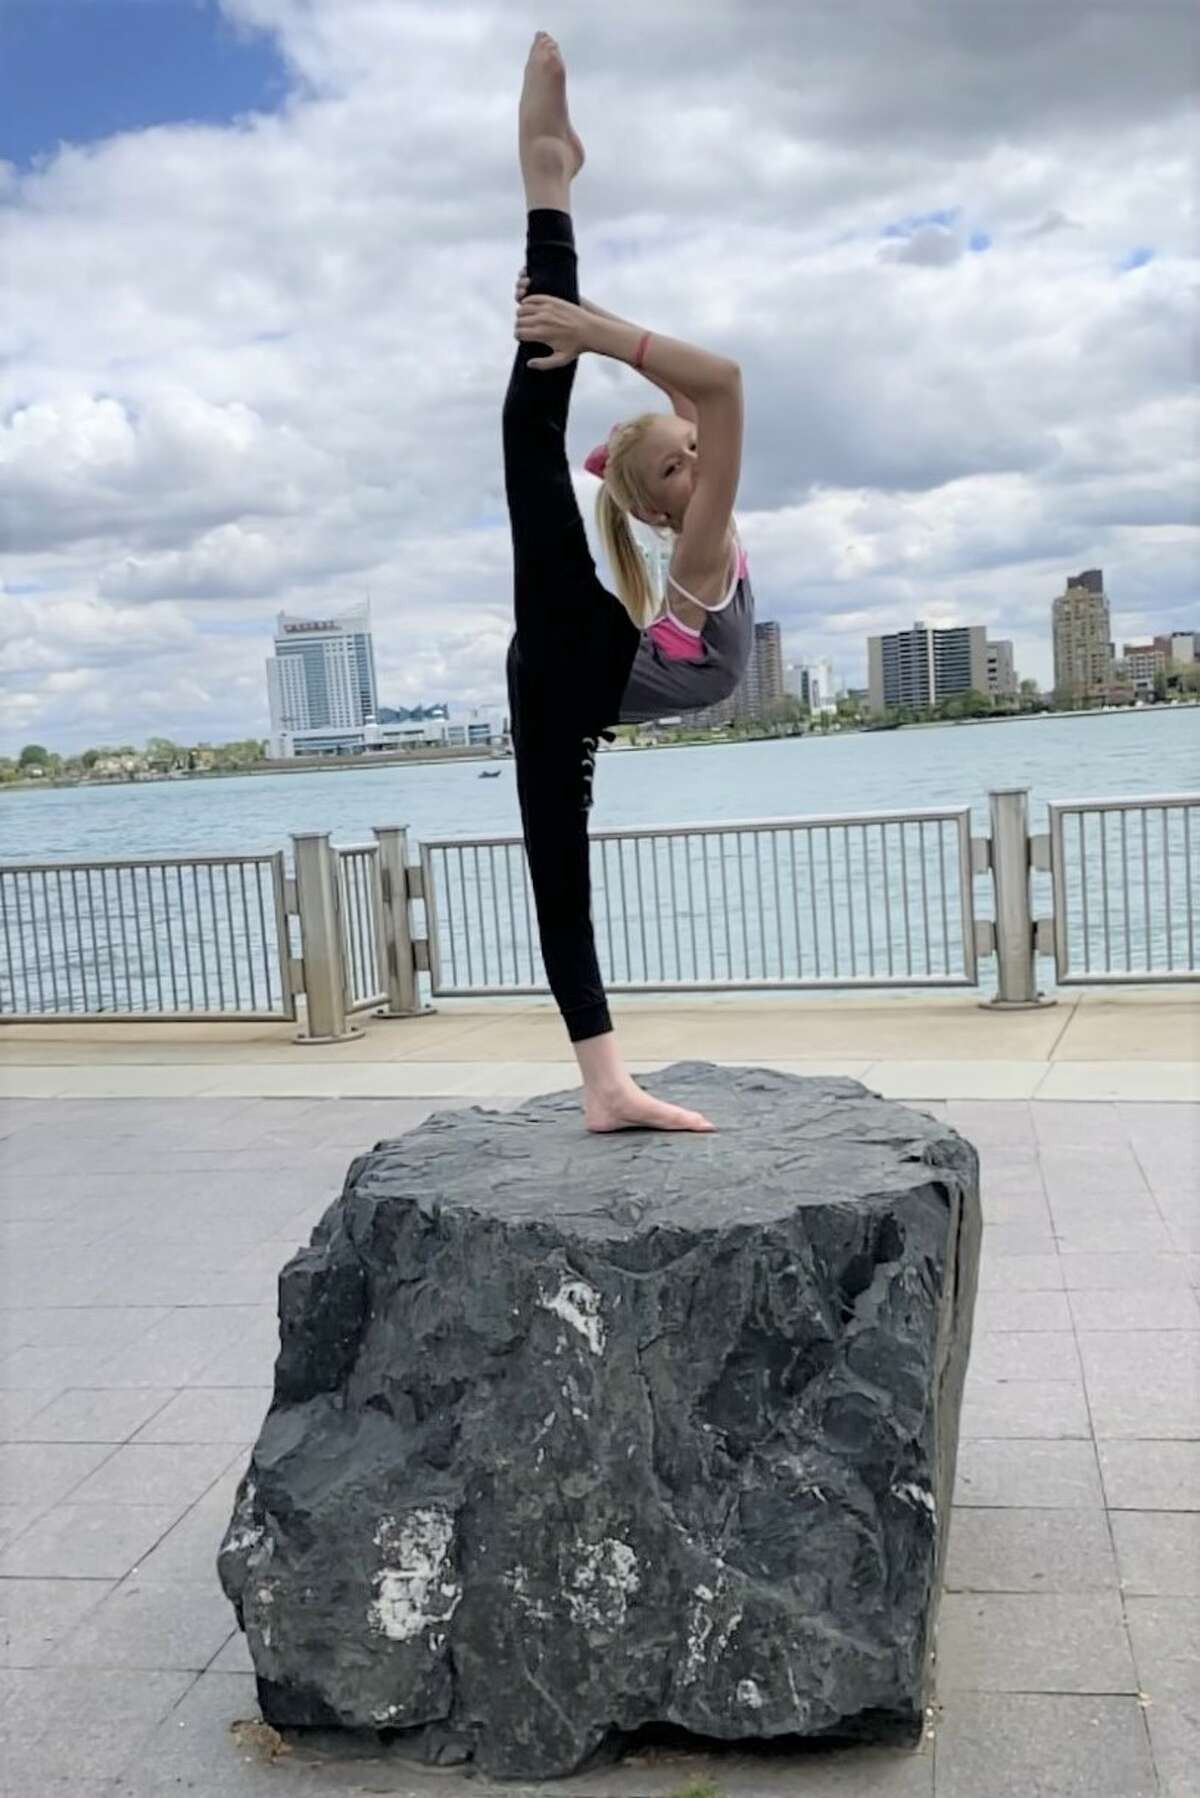 Daniella Lampen, of Manistee, qualified to compete in the Dance Awards in Las Vegas at the end of the month. The national competition will feature dancers from all over the world. (Courtesy photo)